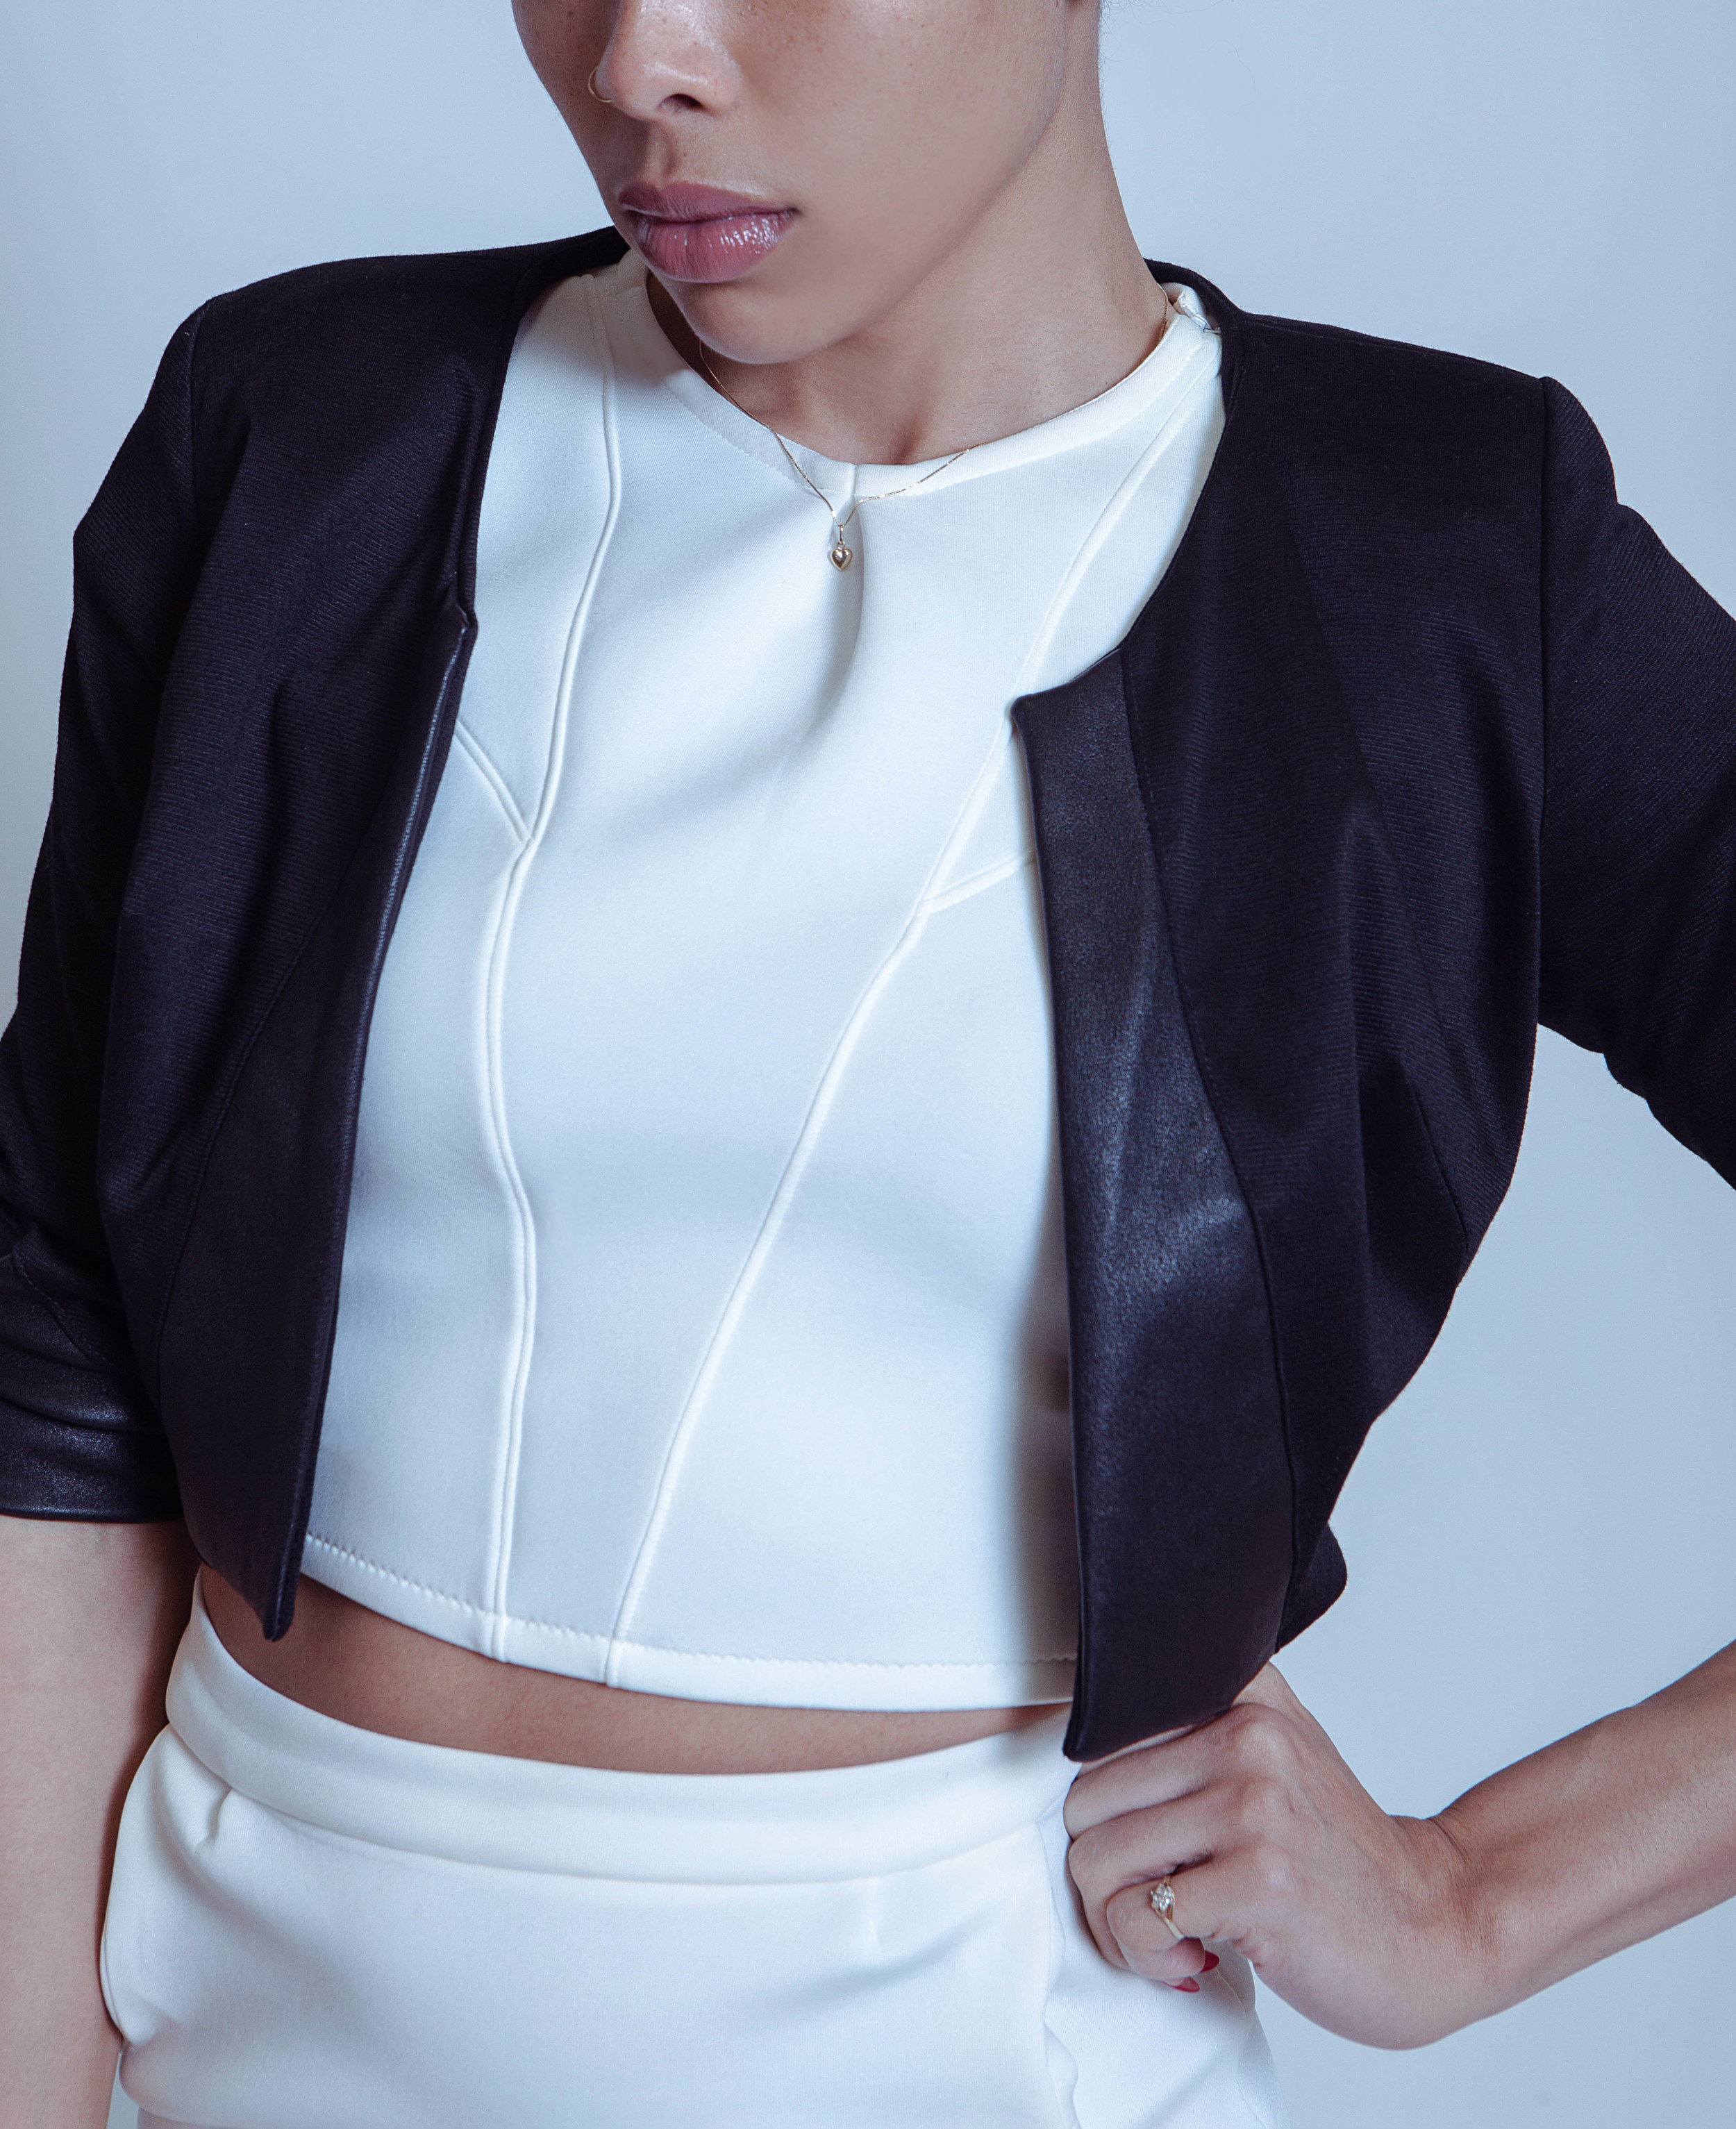 Black Lotus Crop Jacket - Soft, but with an edge...